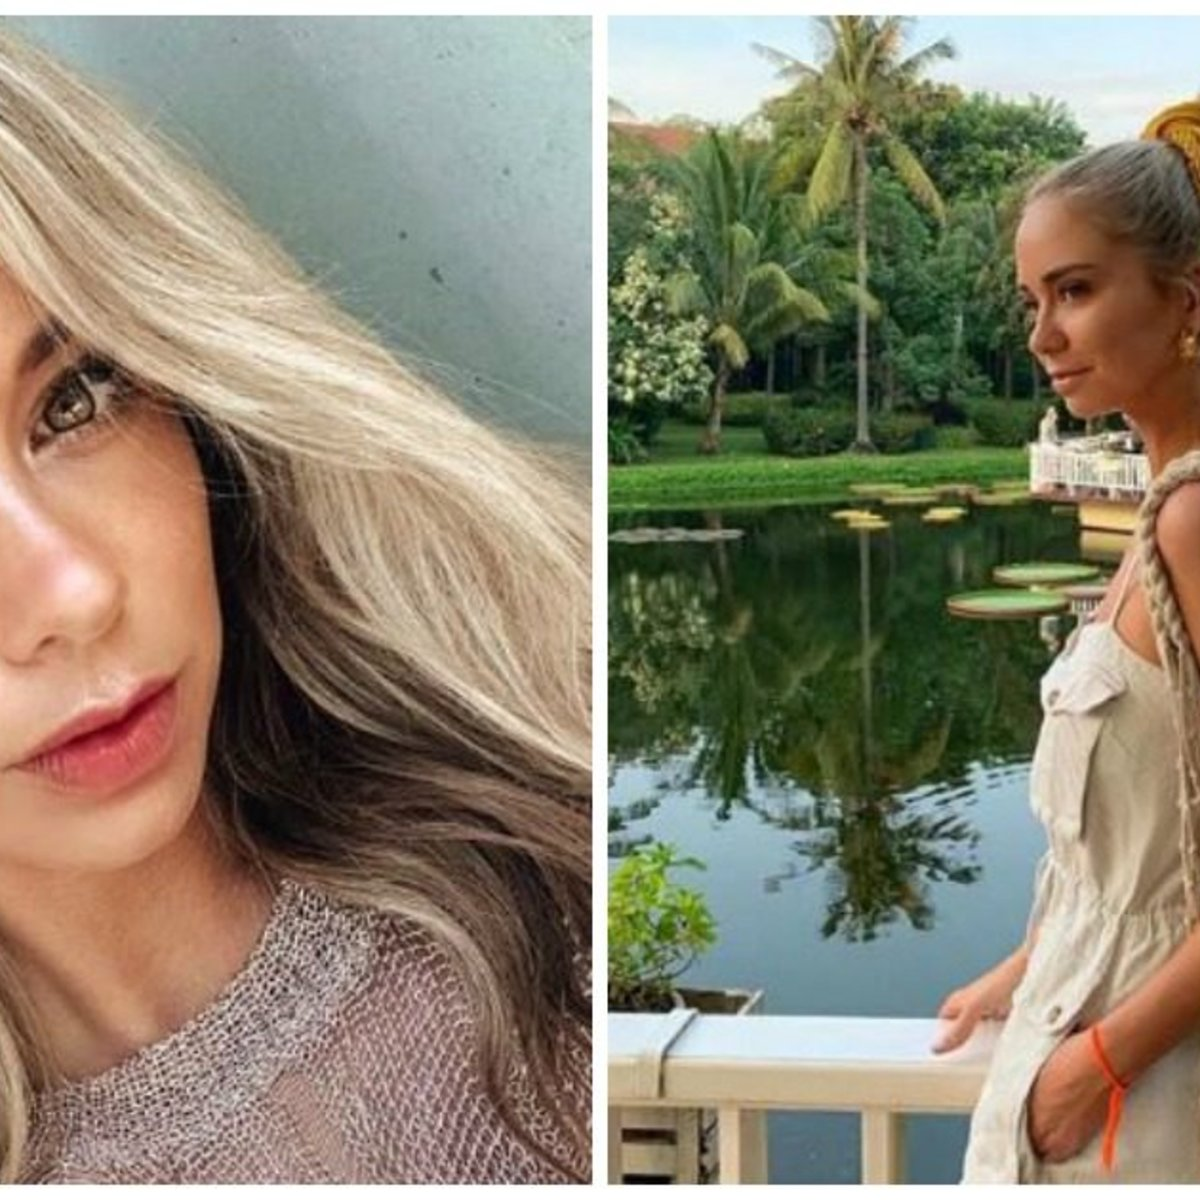 Tully Smyth On Being An Instagram Influencer It S Not How It Looks